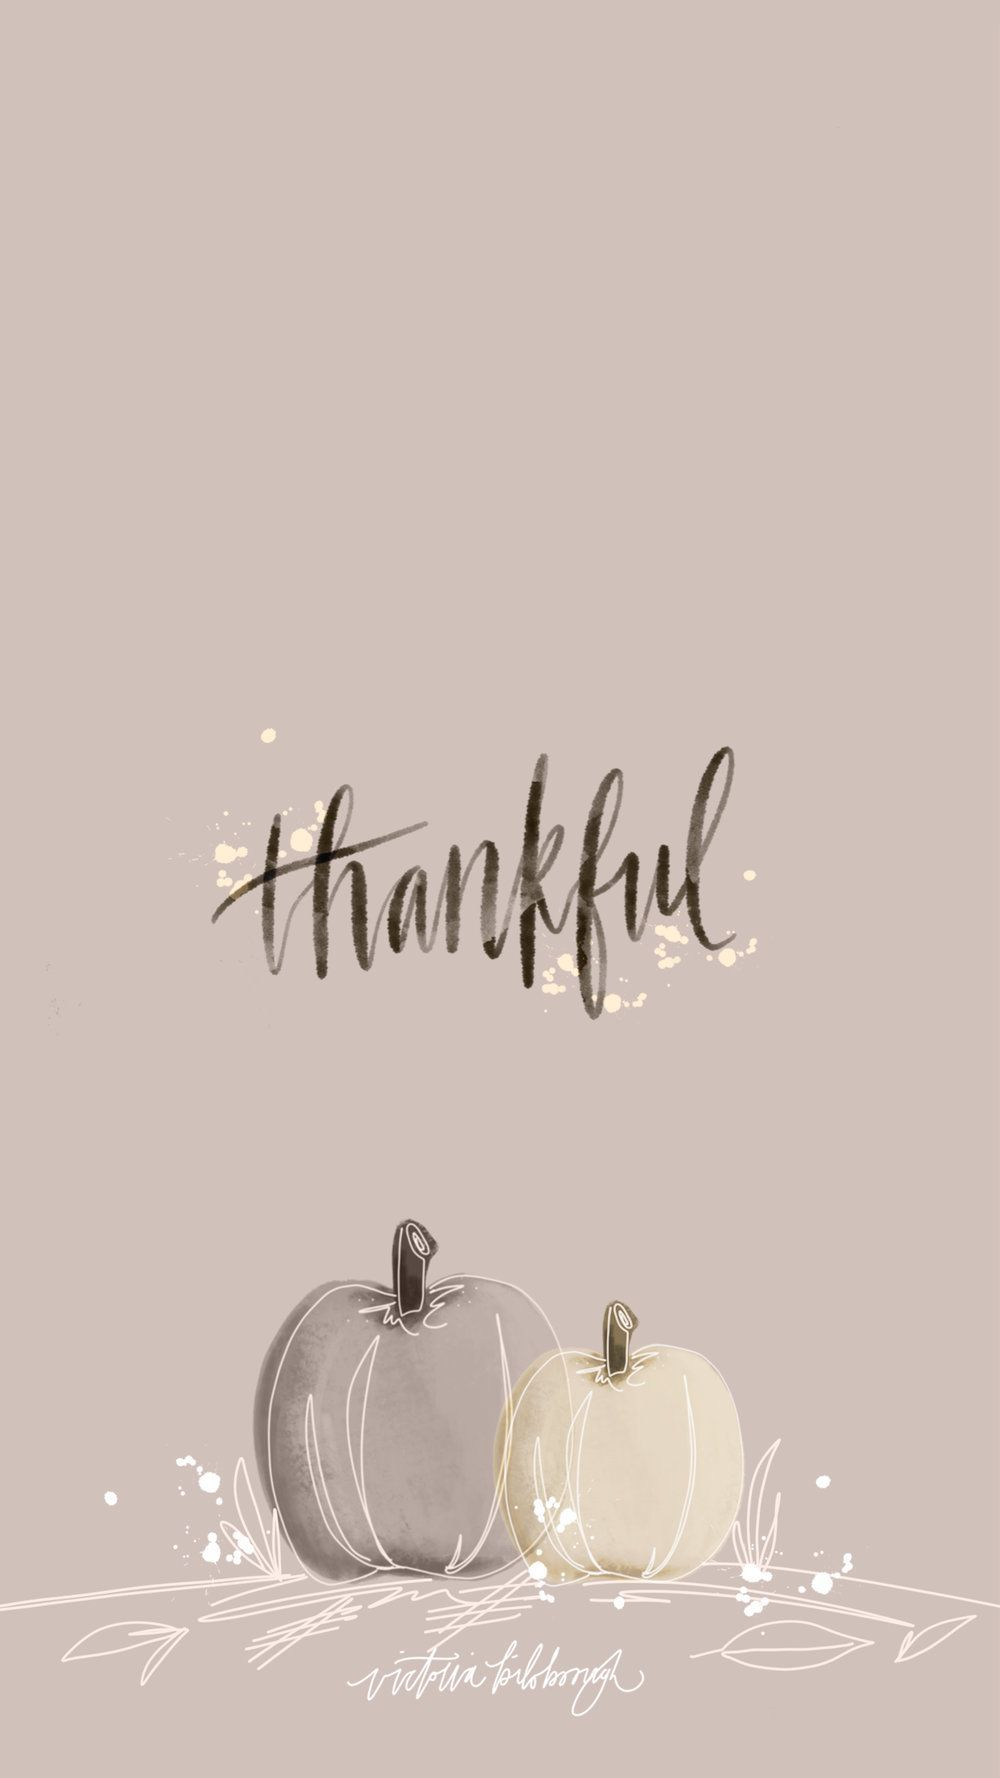 Thanksgiving Aesthetic Wallpapers   Top Thanksgiving 1000x1778